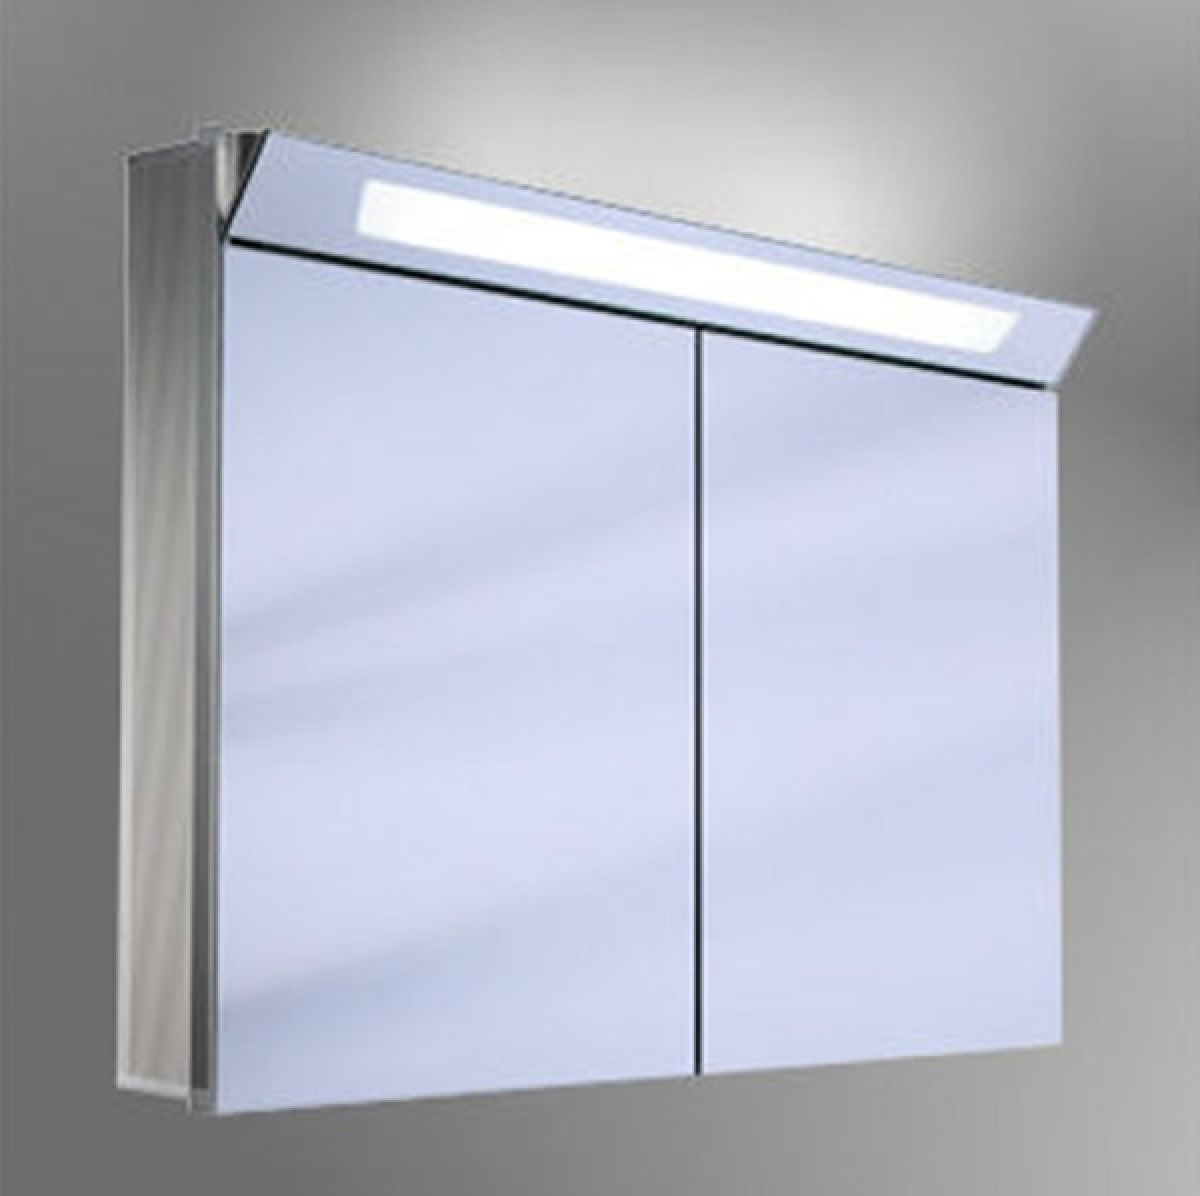 Schneider Capeline Illuminated Bathroom Mirror Cabinet ...